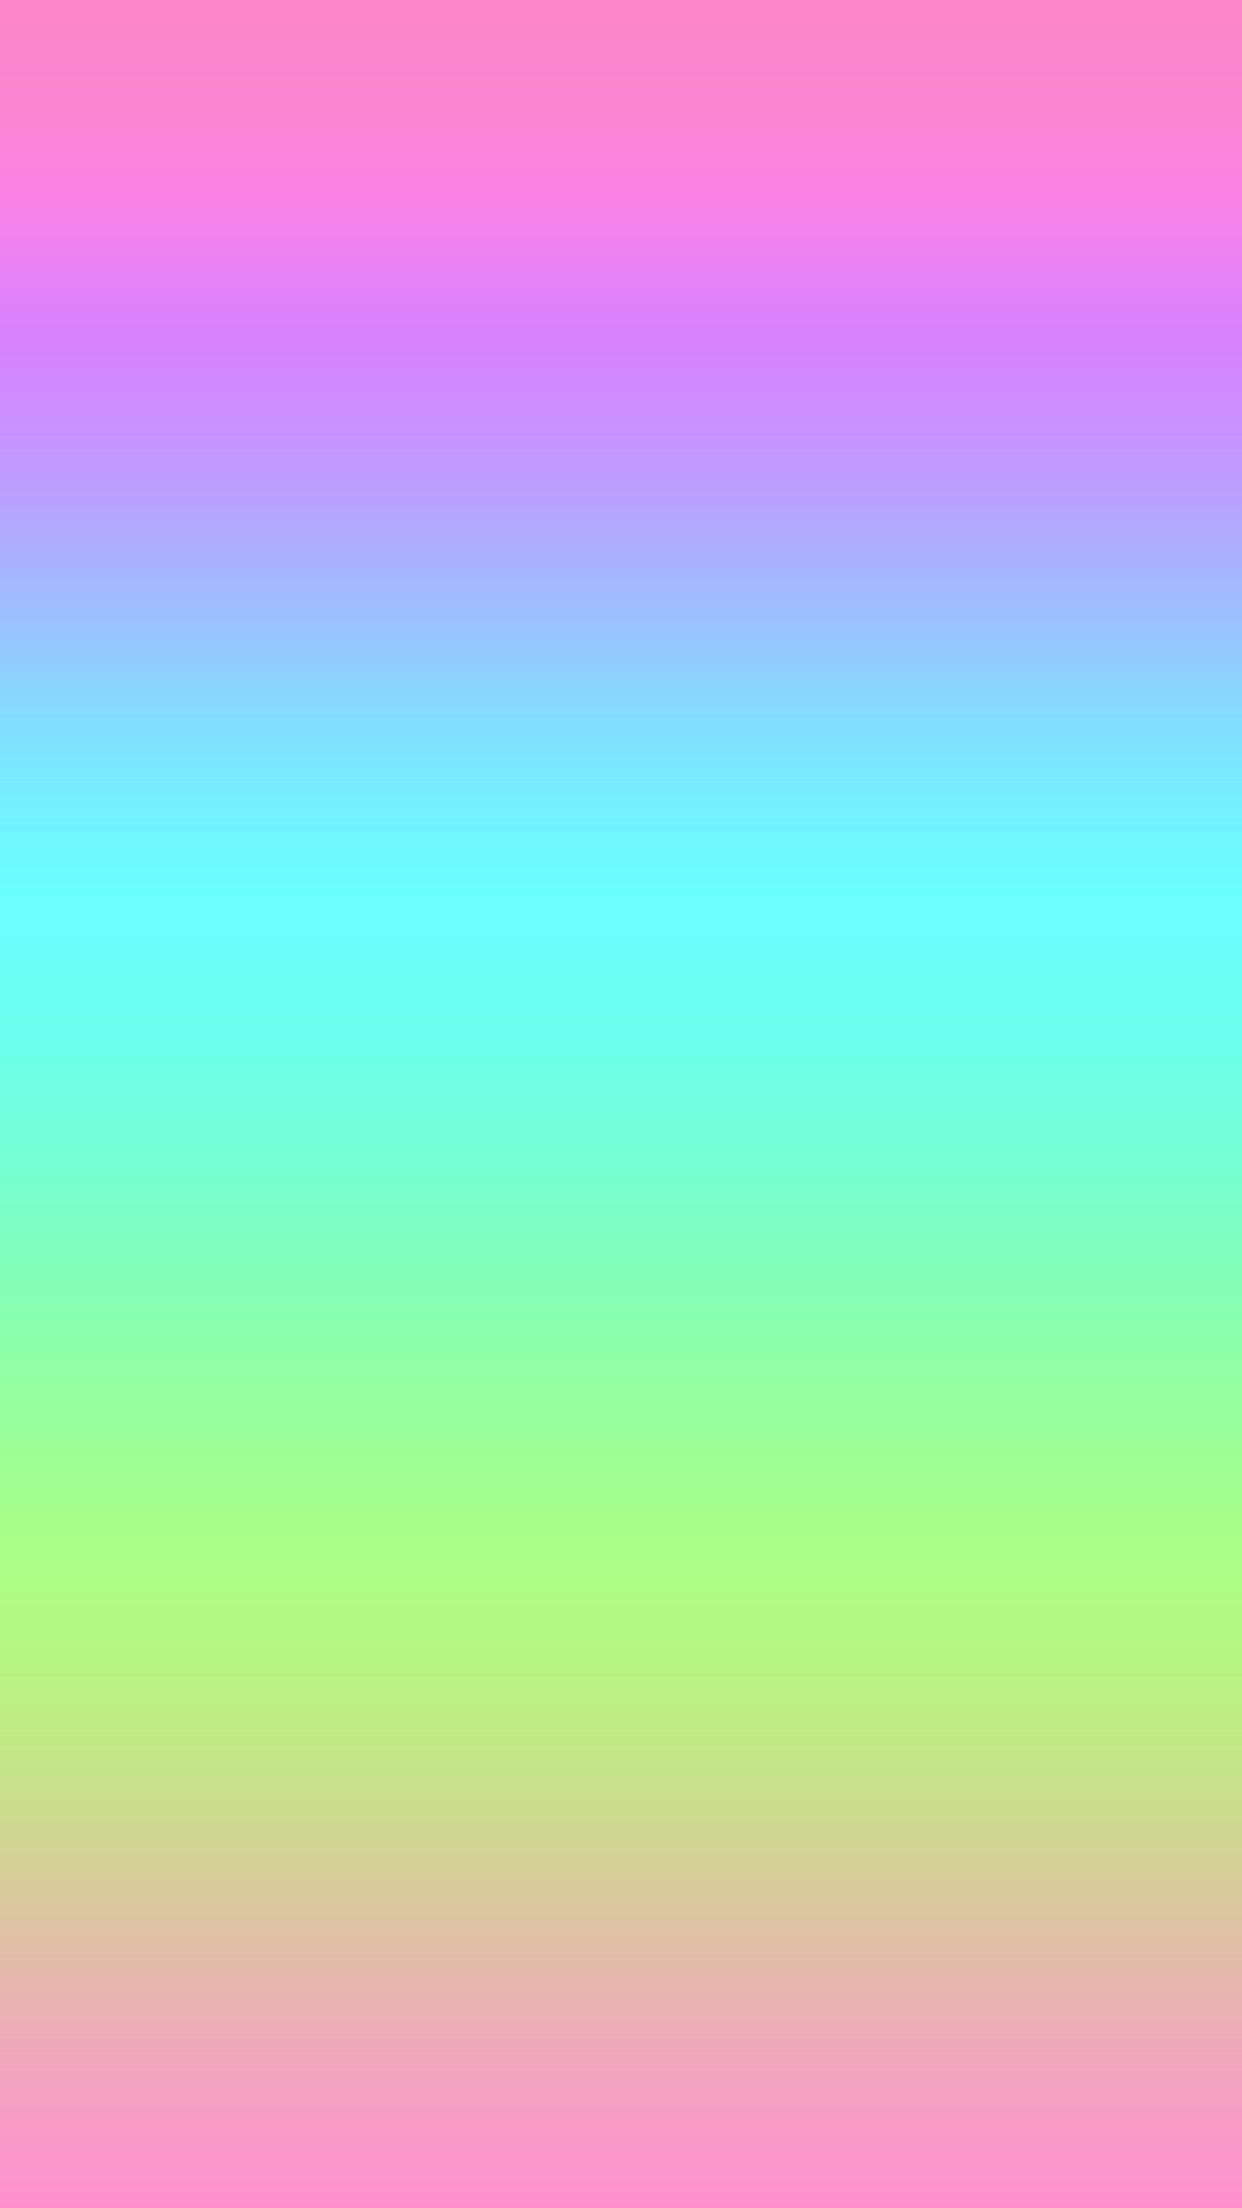 1242x2208 Pastel Rainbow Wallpapers Hd Resolution Click Wallpapers Cute Rainbow Wallpaper Phone Wallpaper Ombre Wallpapers